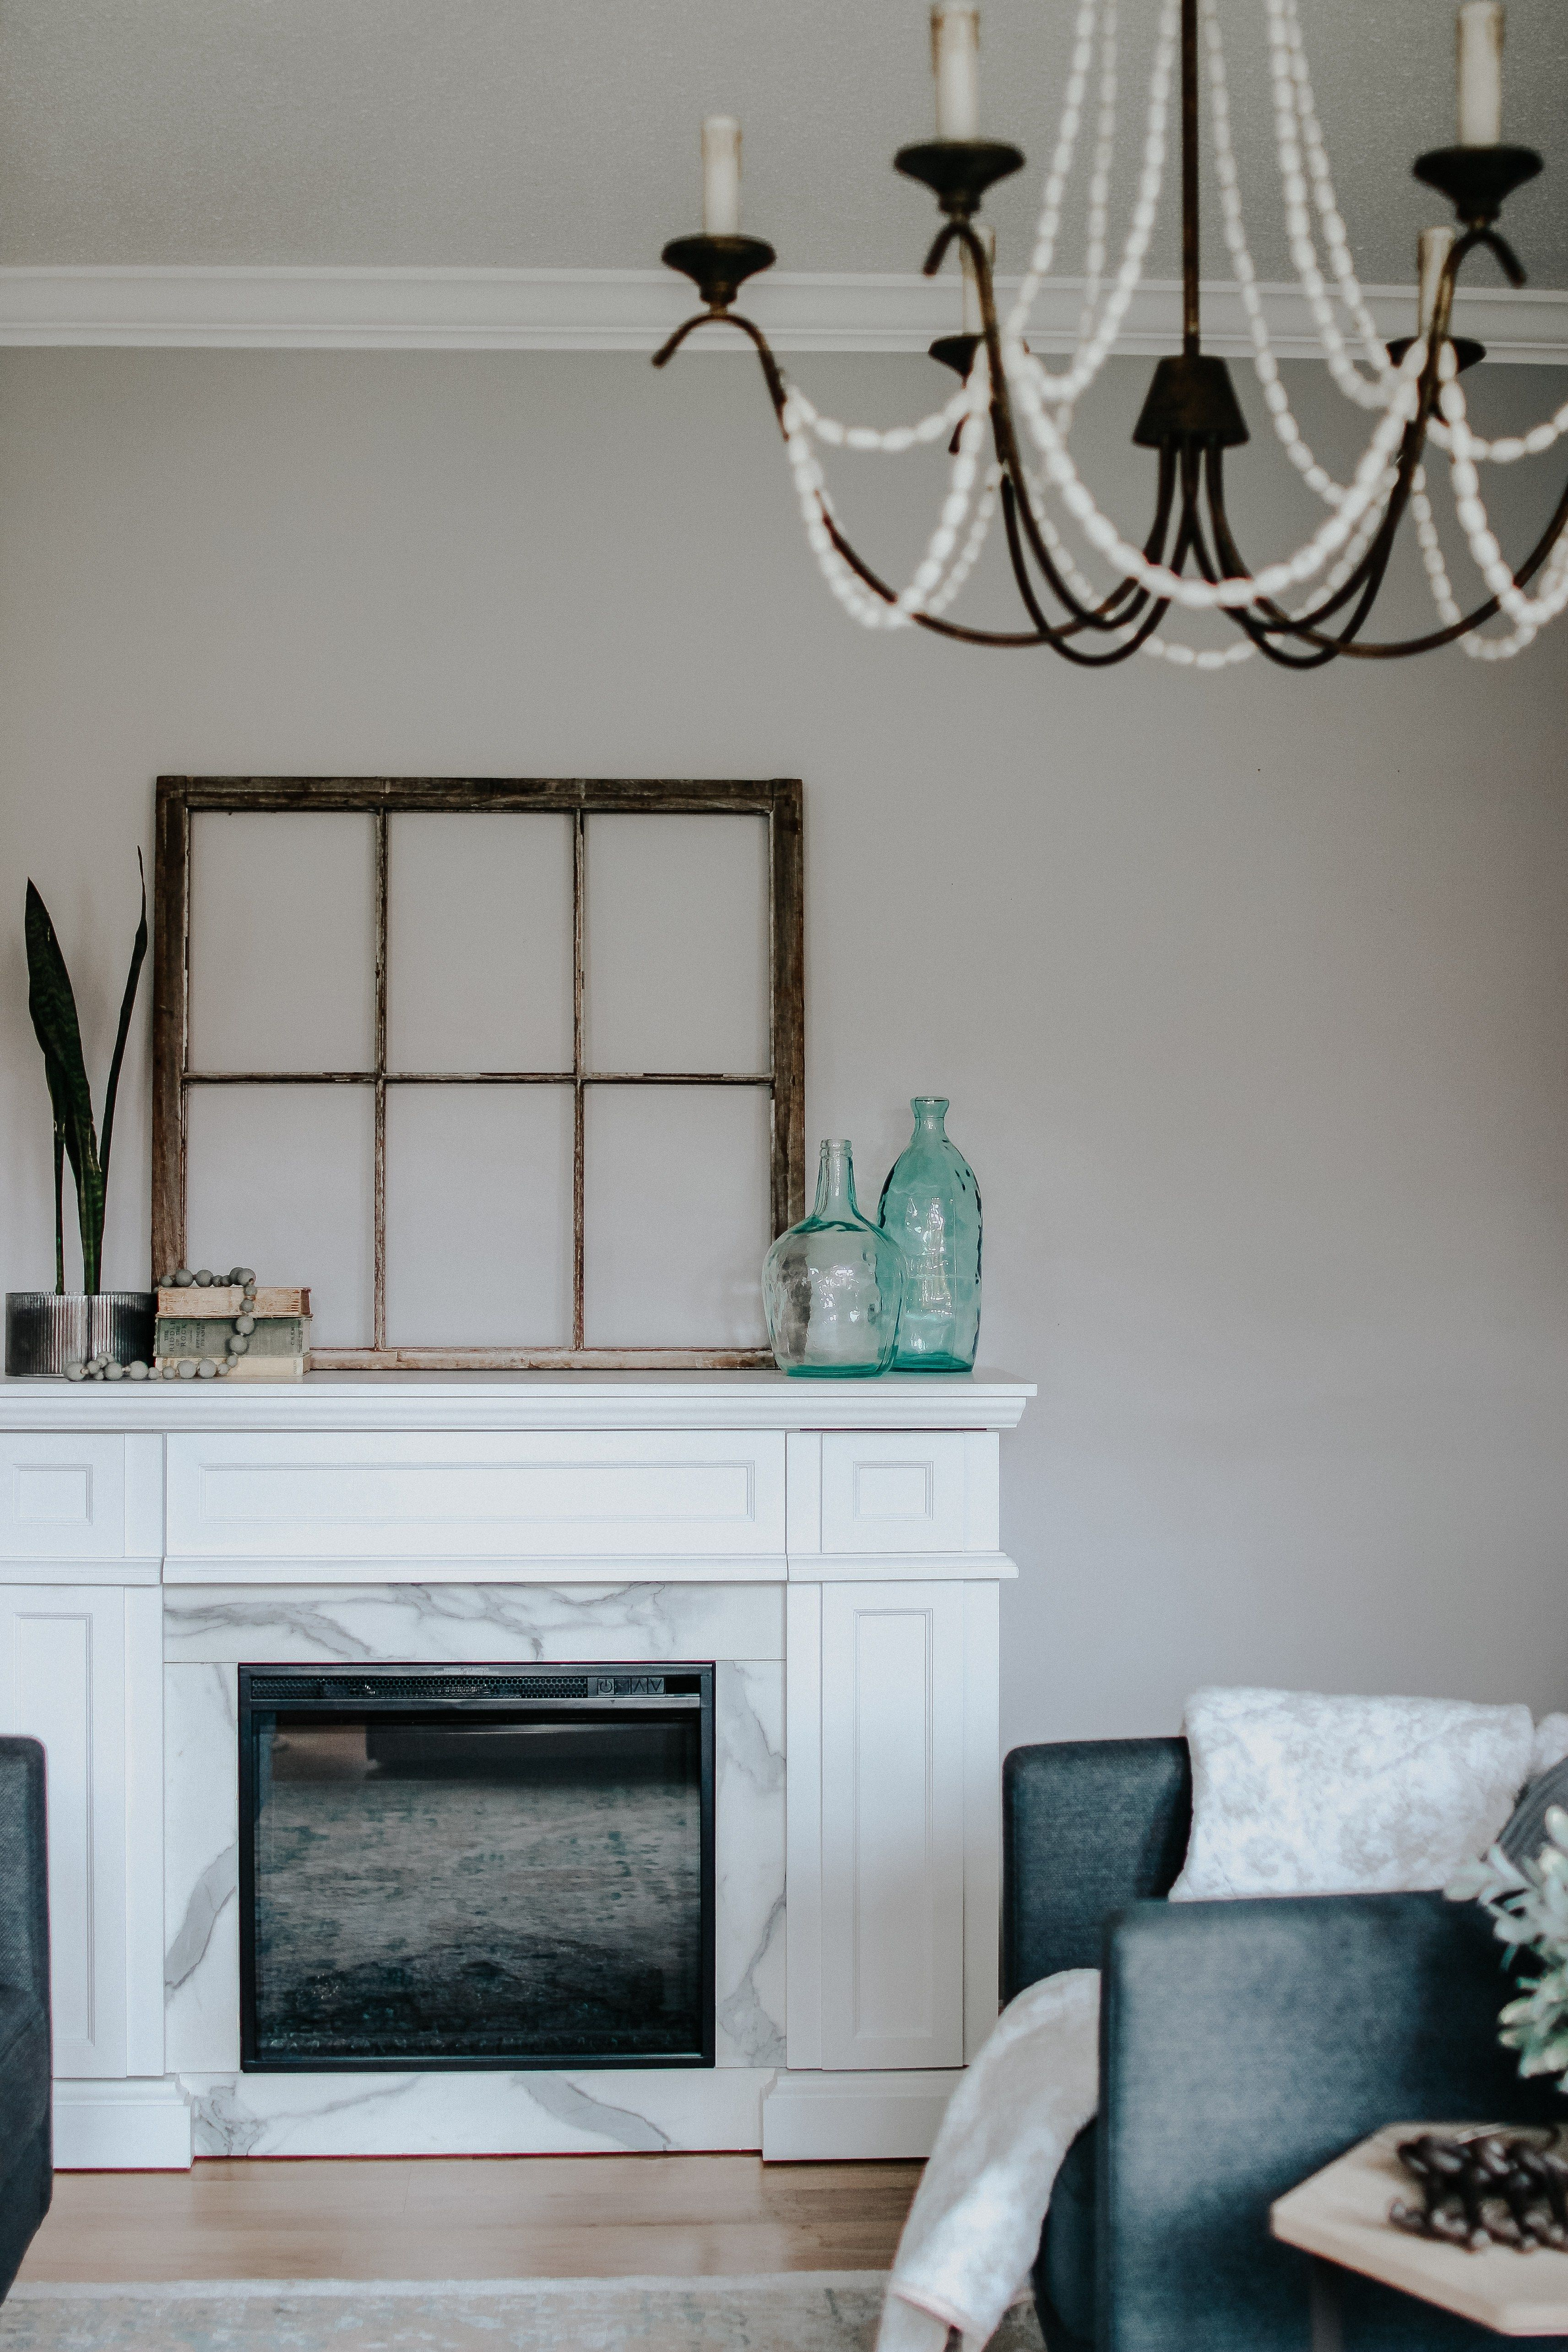 CANVAS Room Refresh with Canadian Tire. This room is completely decorated  and styled with #CanadianTire decor and furniture   Room, Blogger decor,  Fireplace update